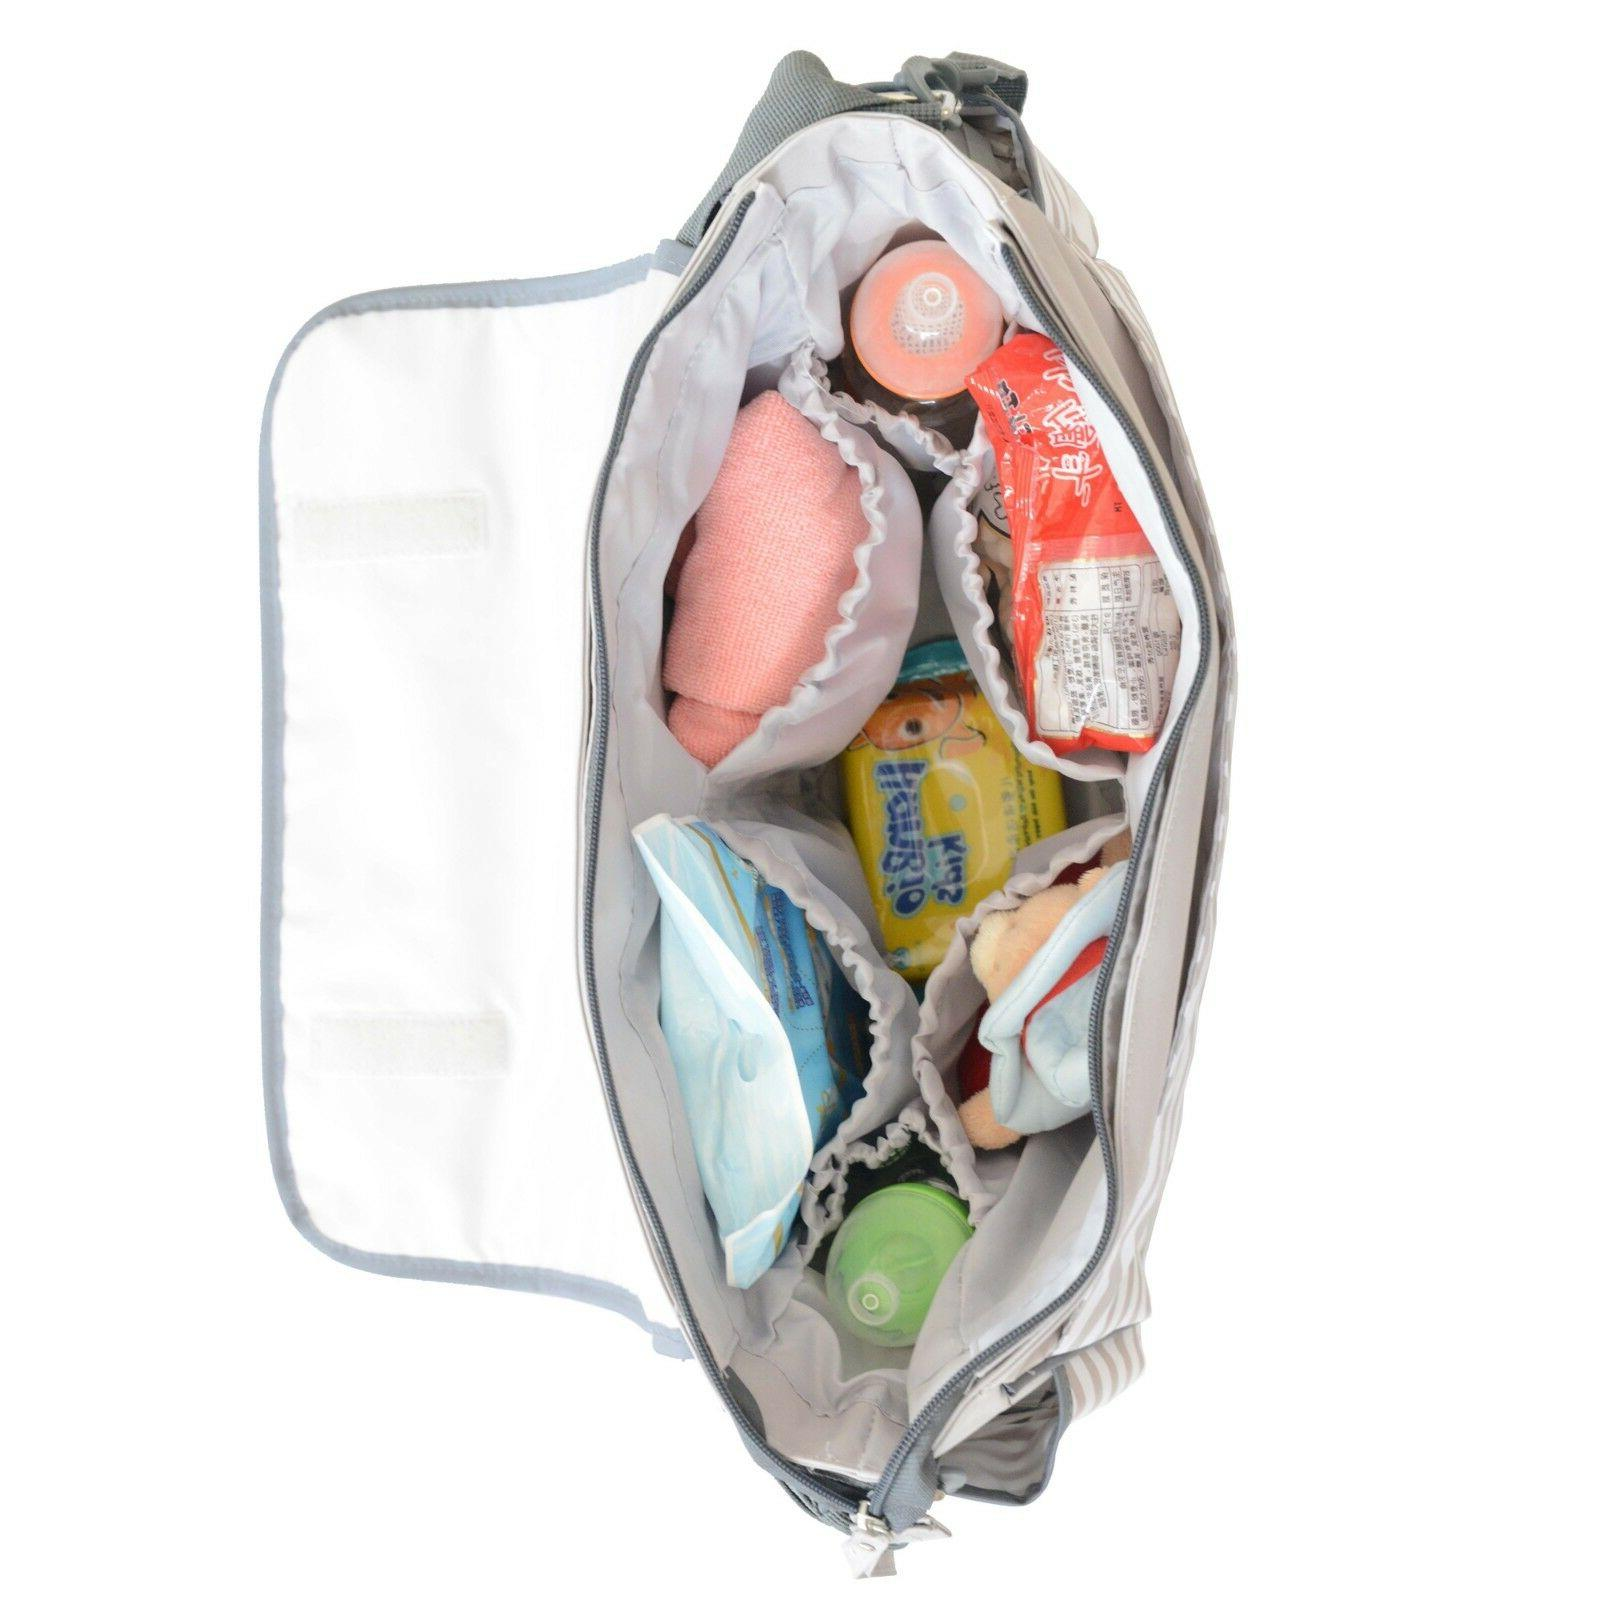 Diaper Multi-Function Travel Bag Nappy Baby